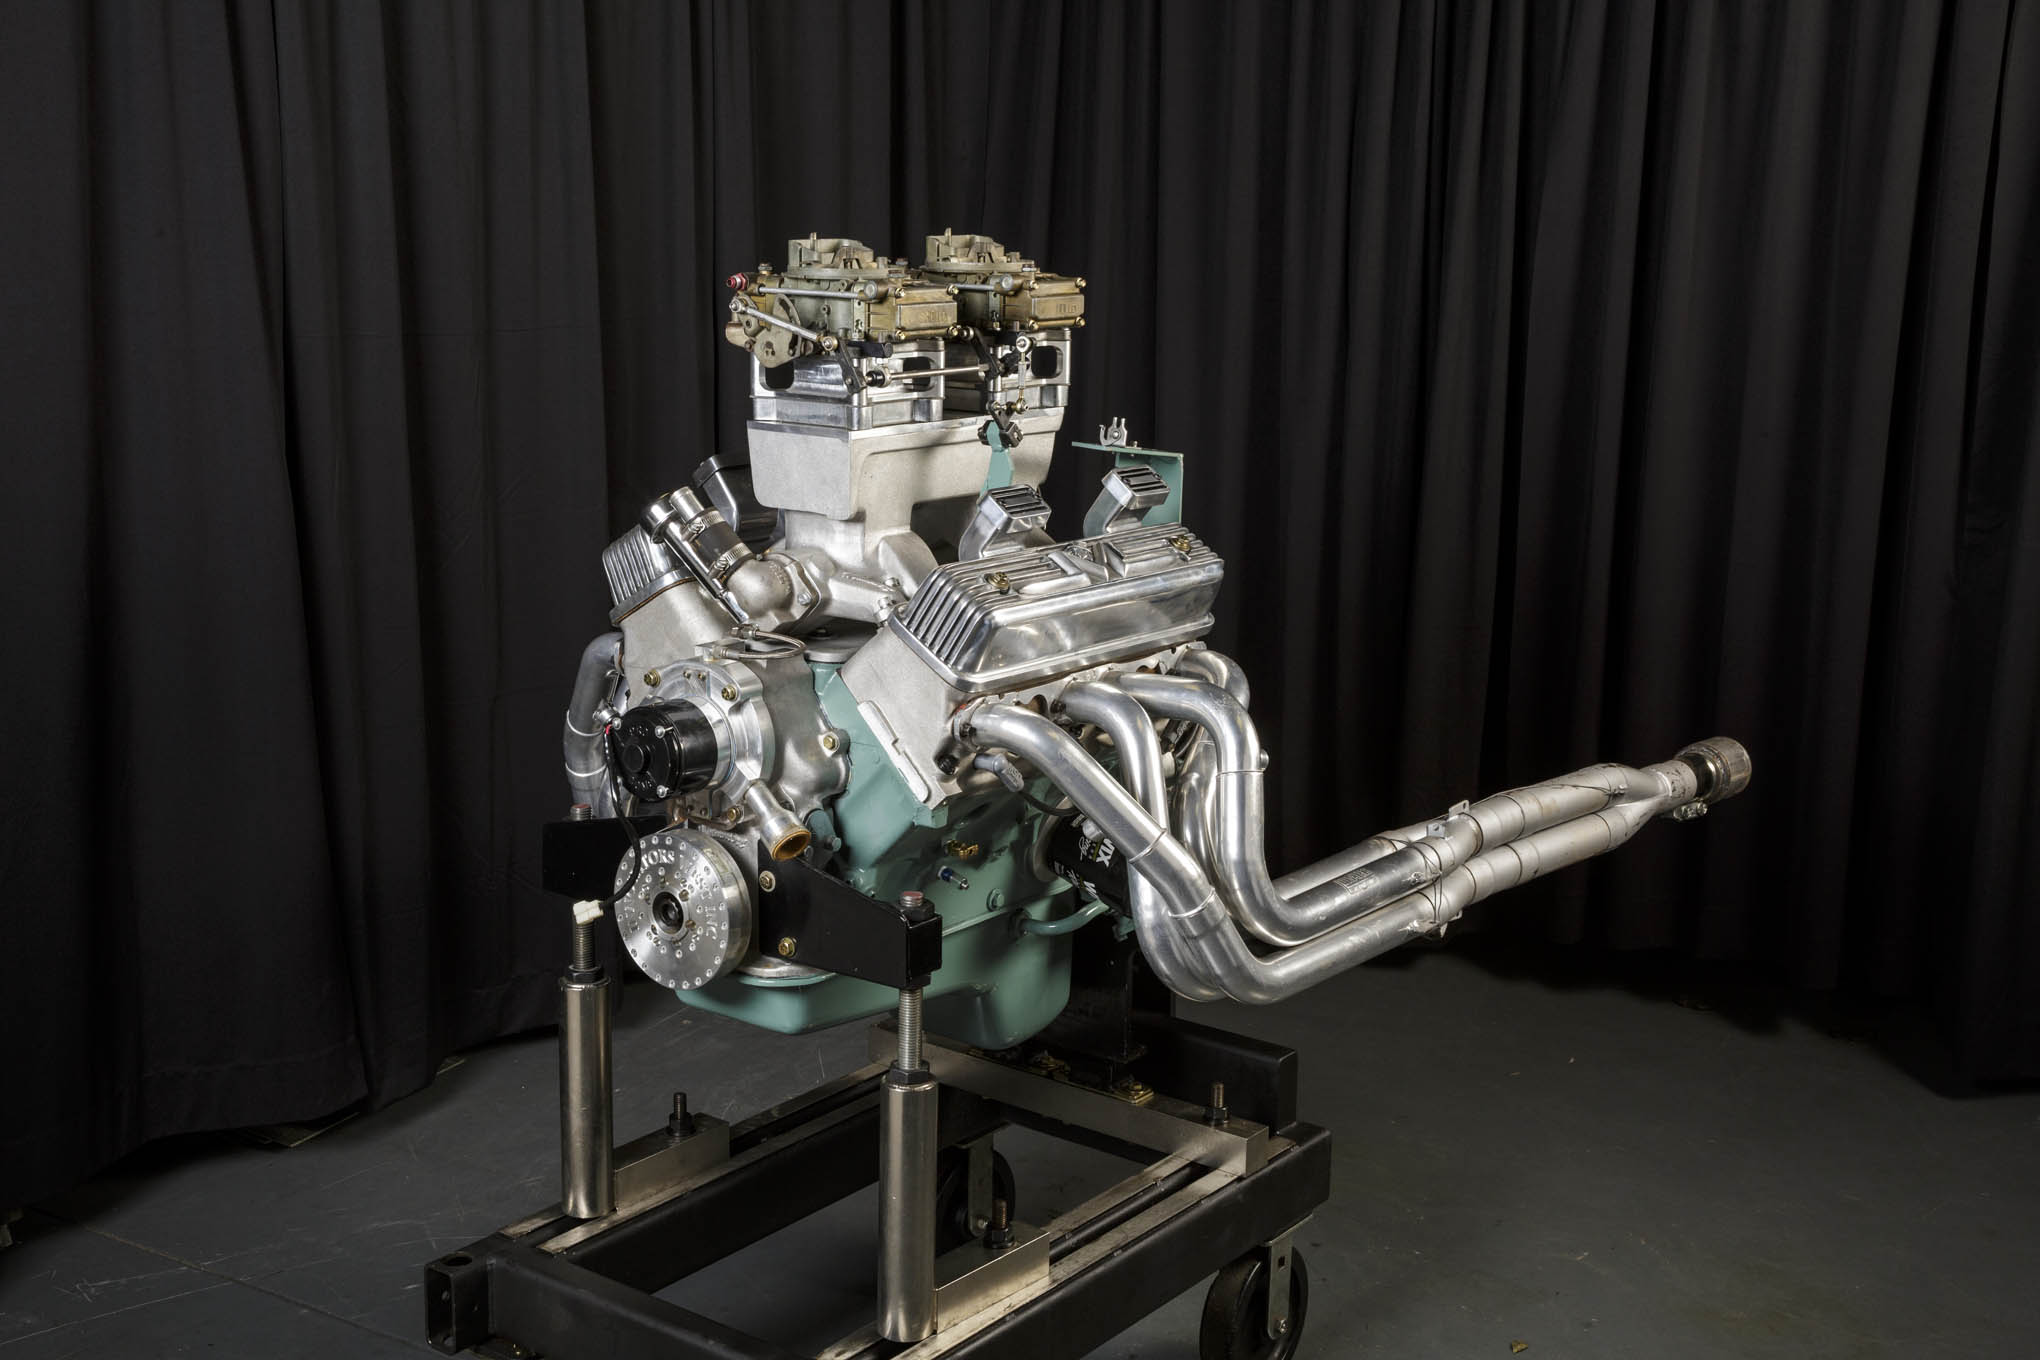 Introduced in 1954, the Ford Y-block was rated at a measly 130 horsepower. Ted Eaton's Mercury Y-block cranked out 603.2 horsepower, nearly 4.5-times the original output!